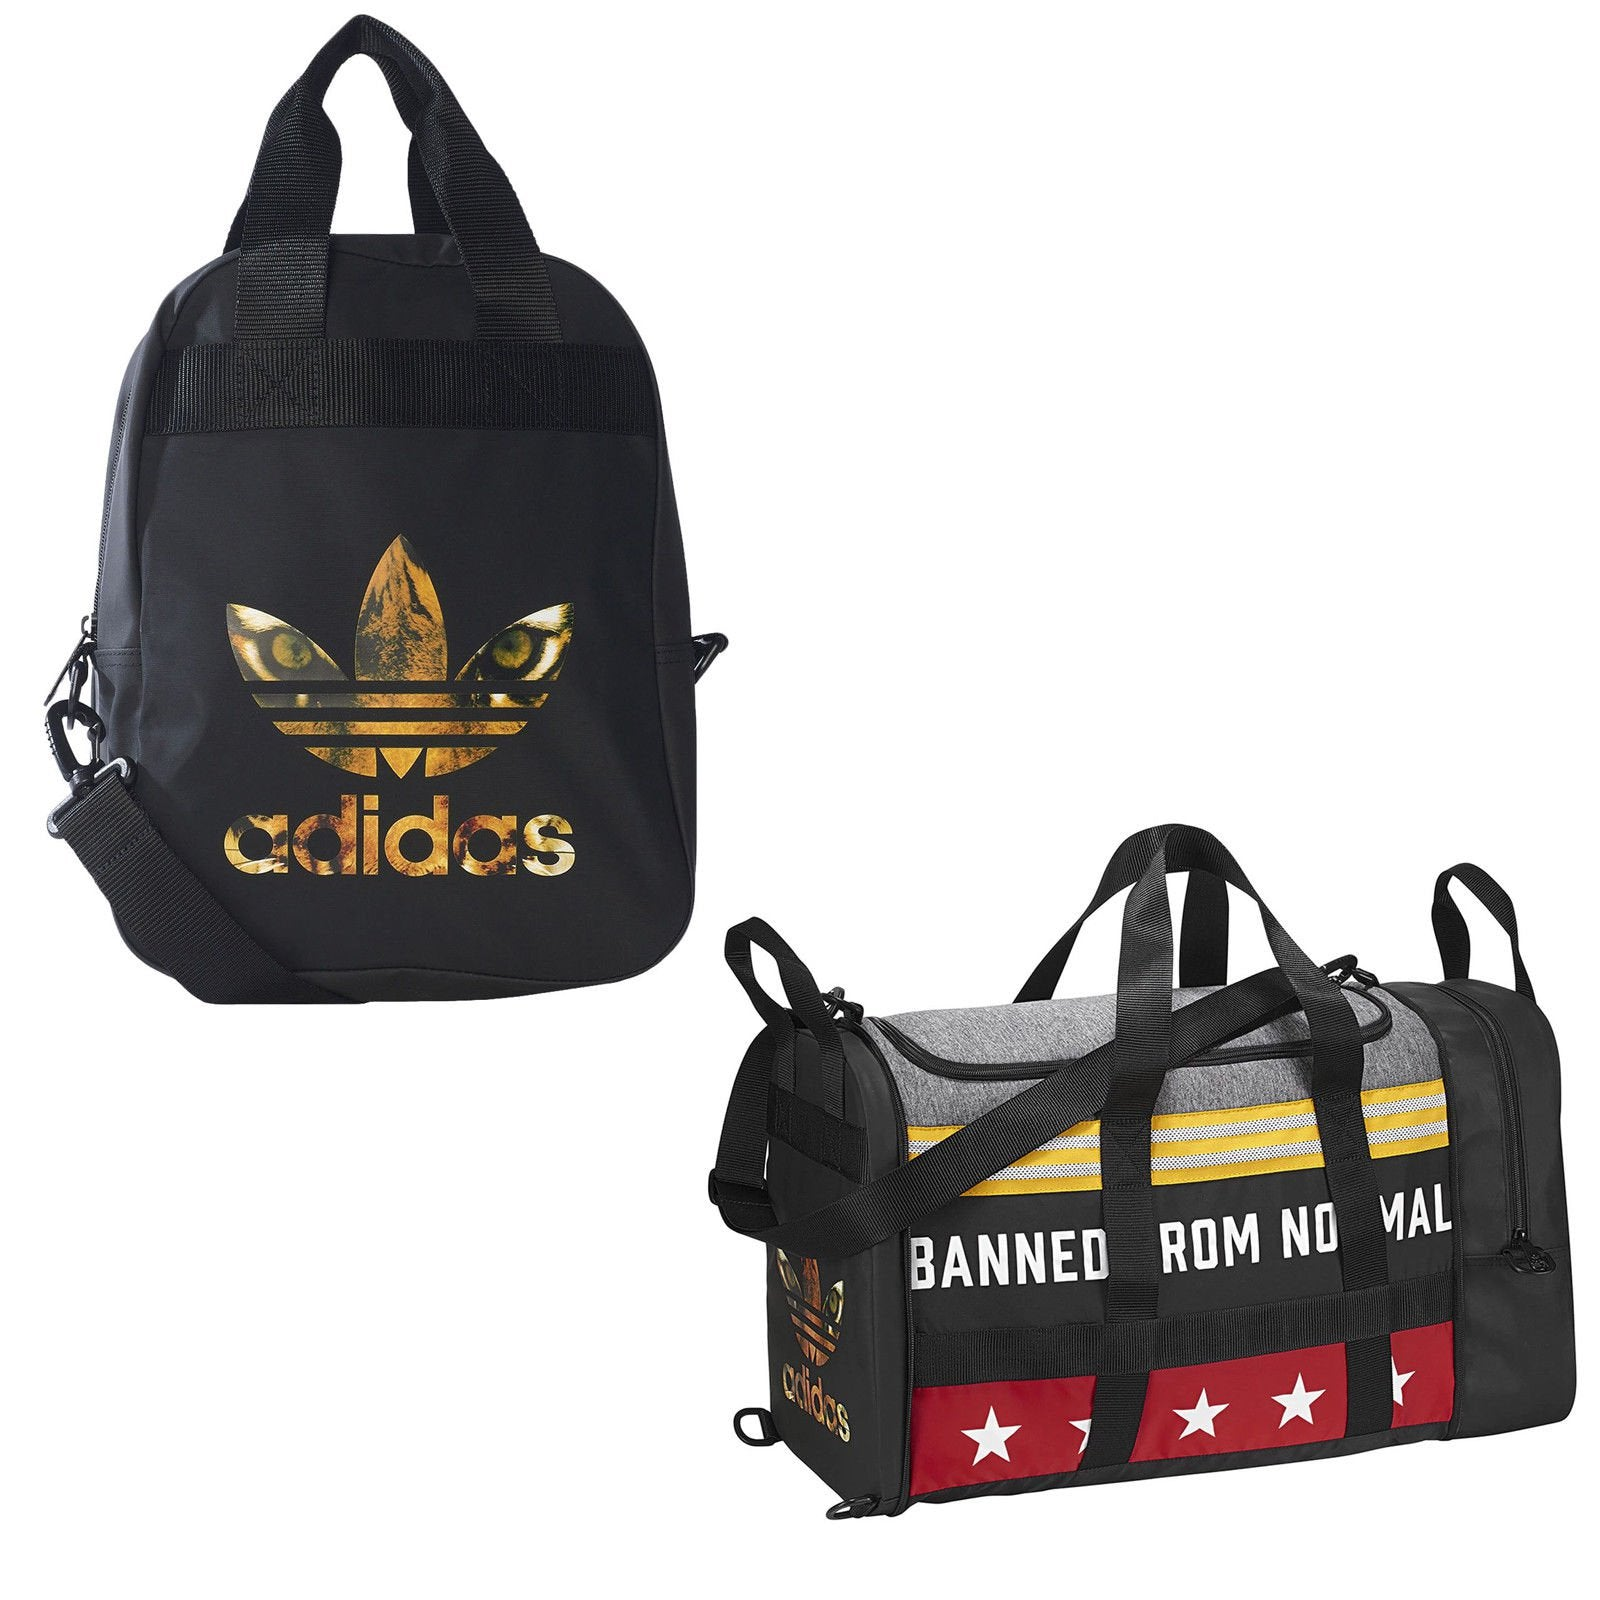 Adidas Originals Rita Travel Bag AY9370